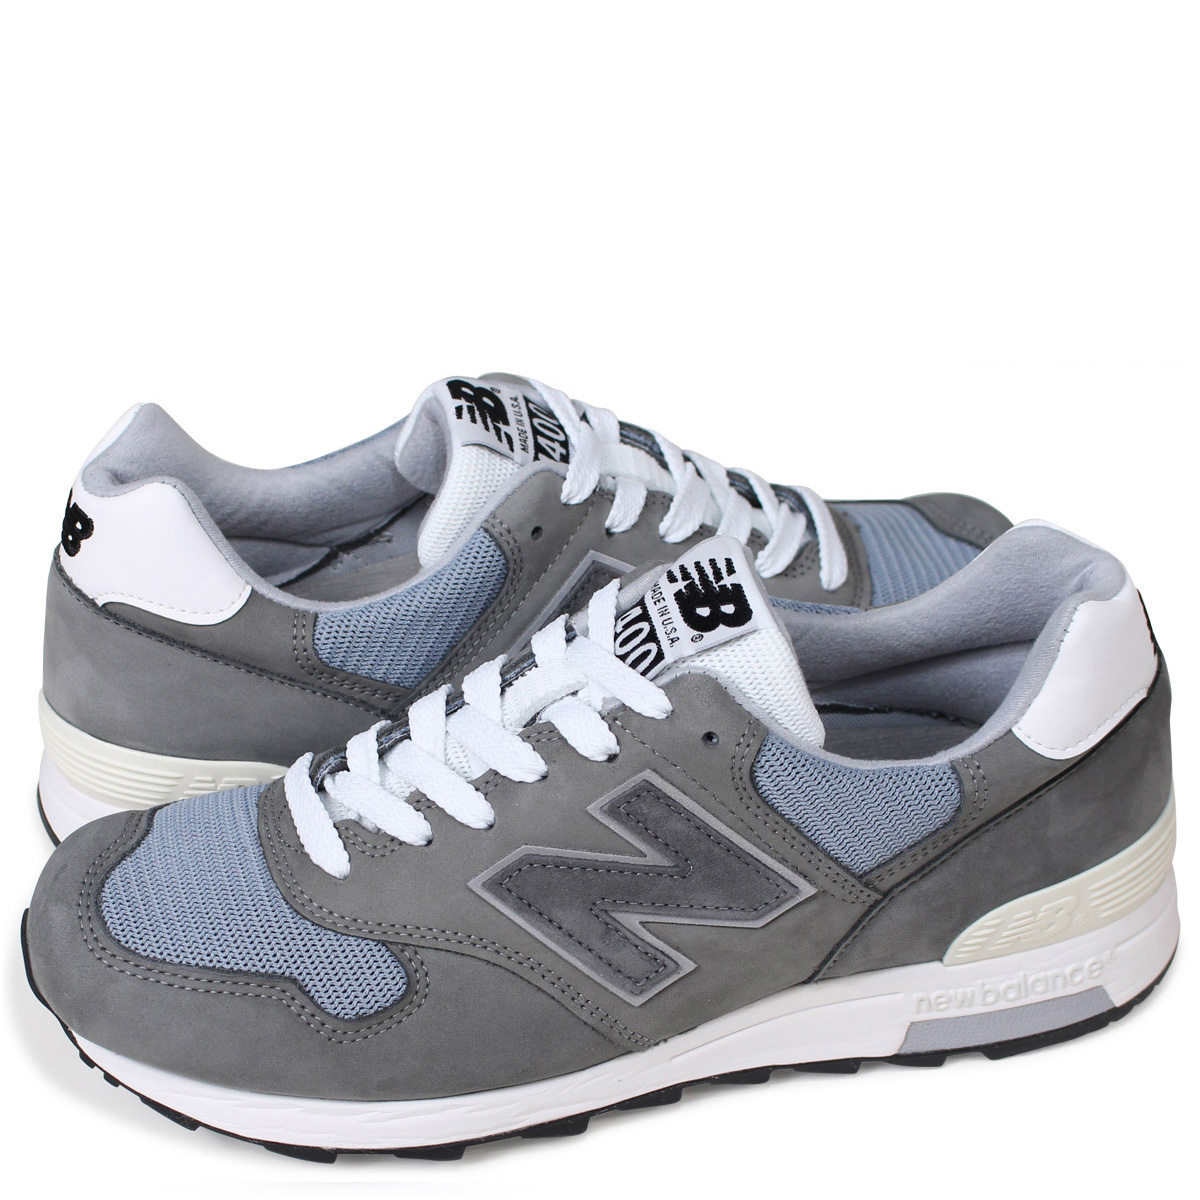 new balance M1400WA New Balance 1400 men's lady's sneakers D Wise MADE IN  USA gray [186]